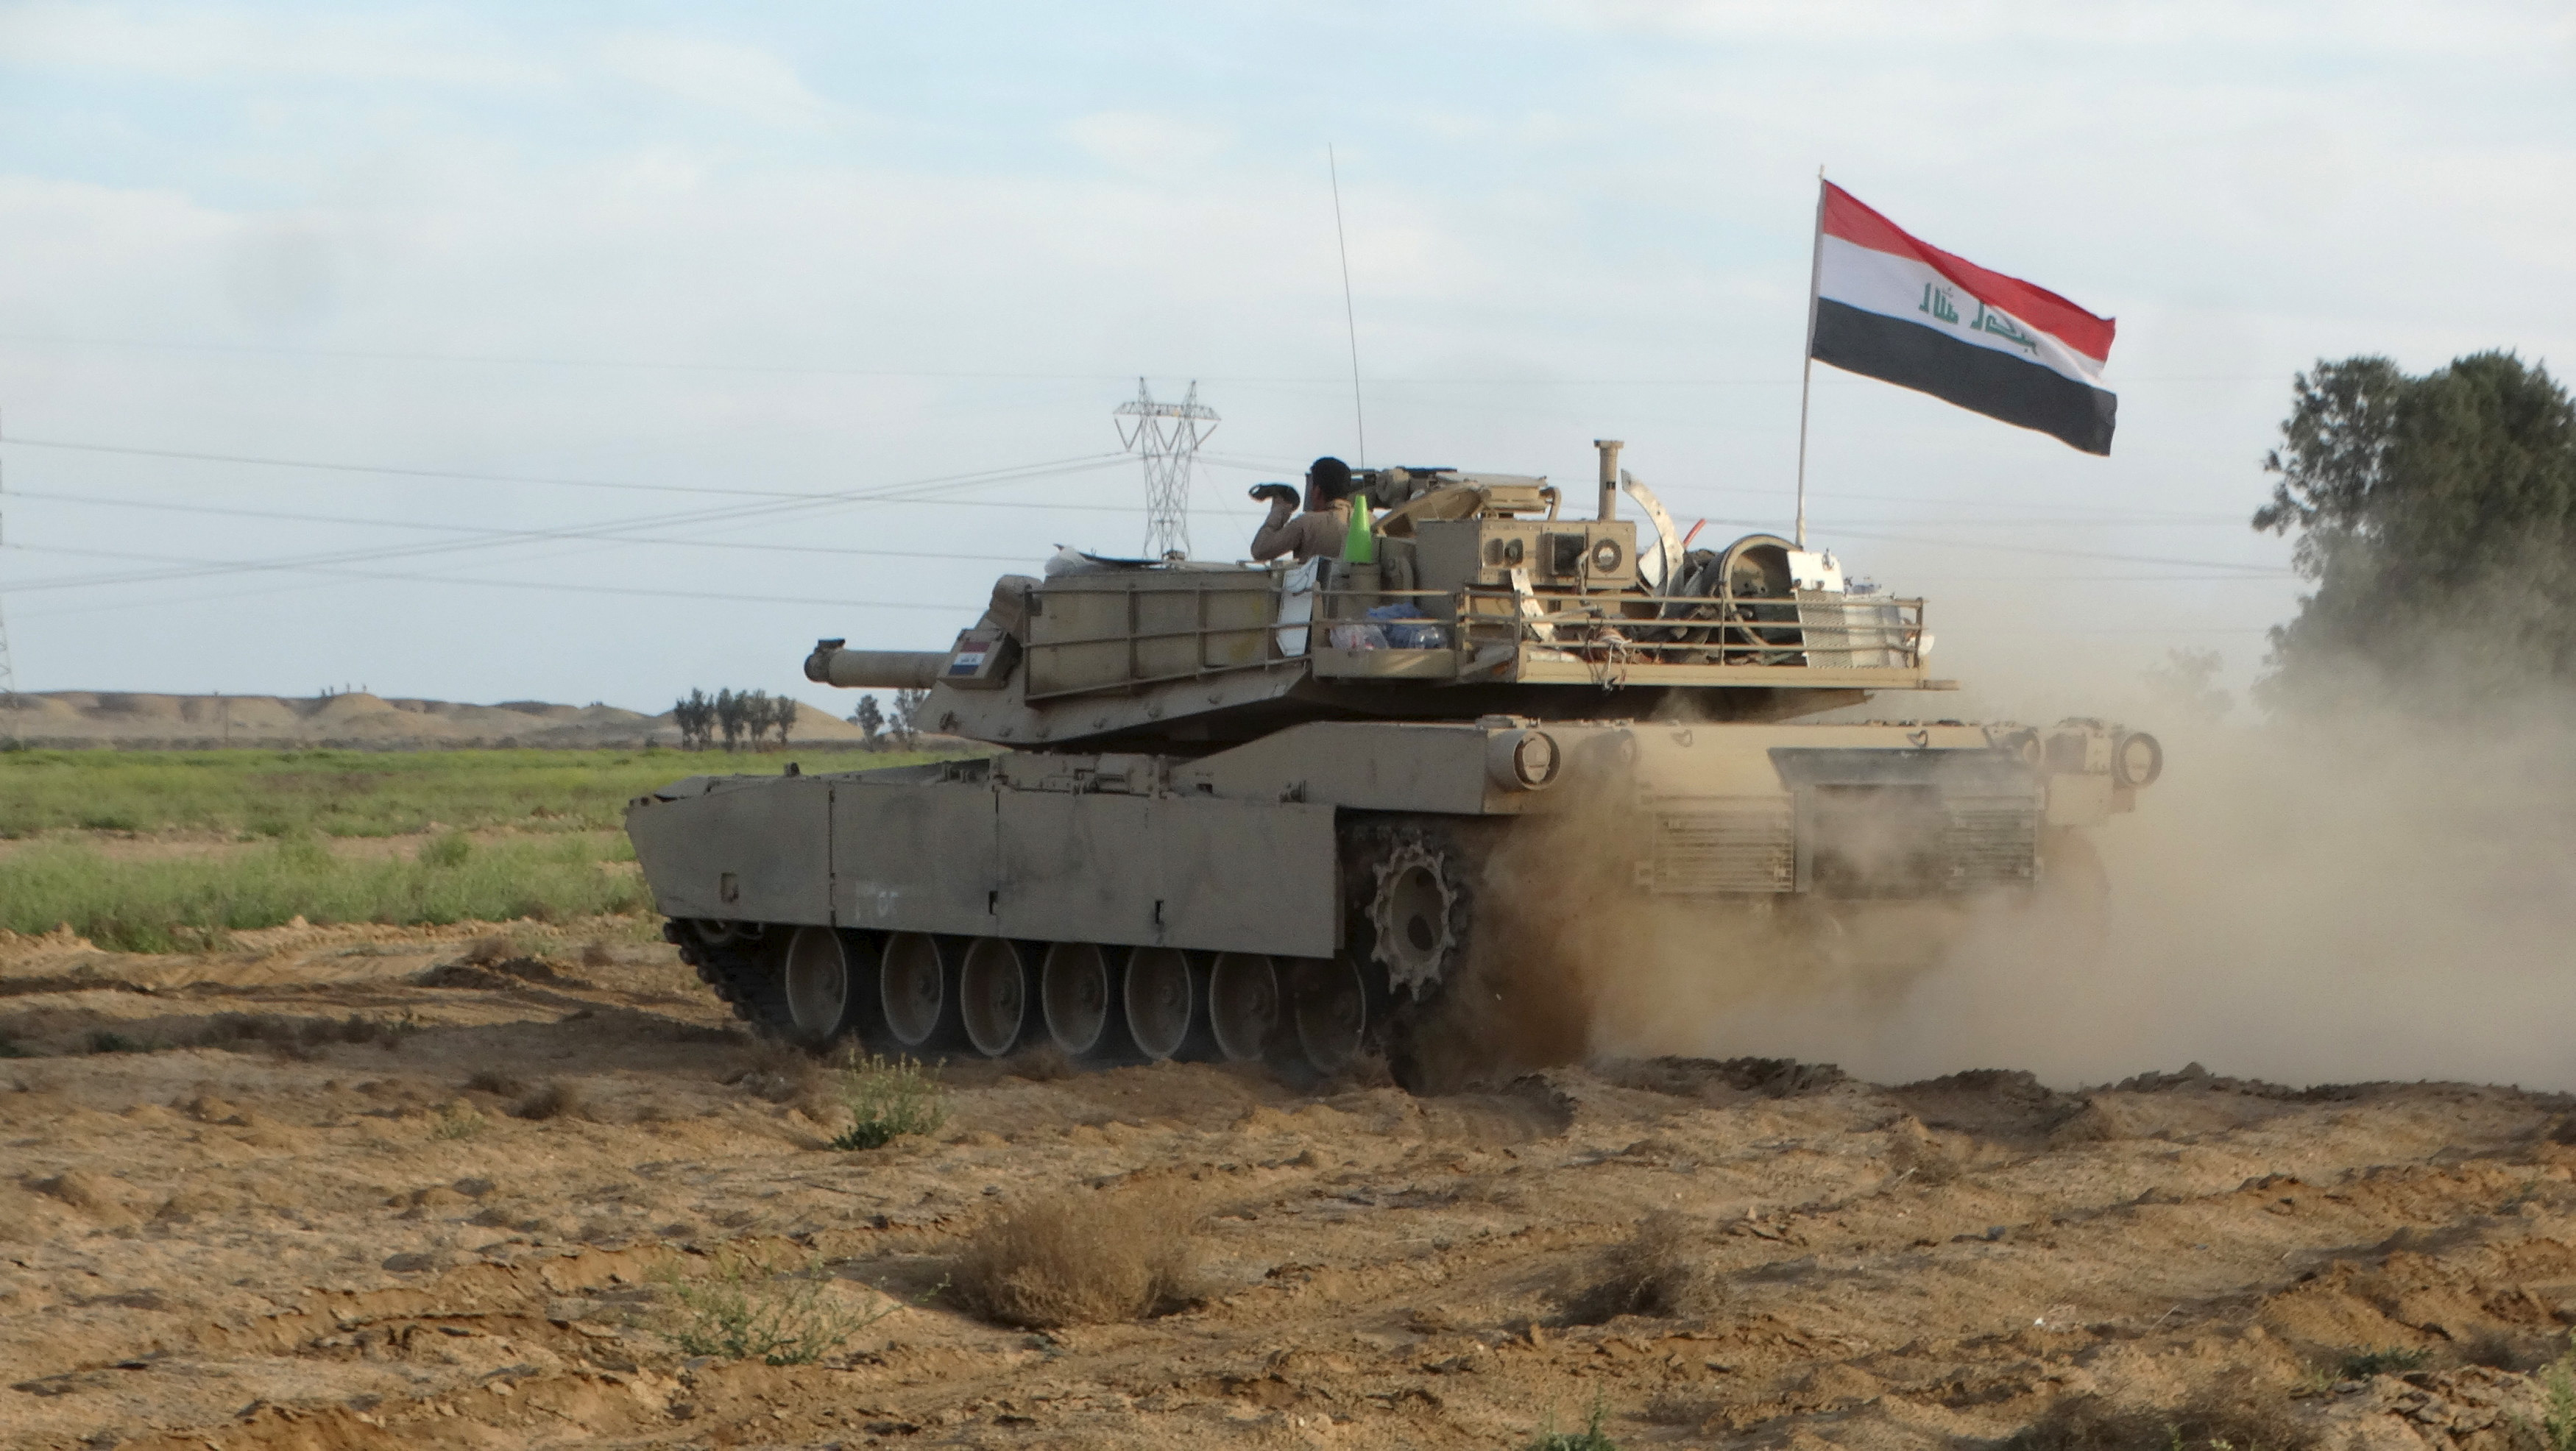 Iraqi Army Launches Security Operation Against ISIS Cells Near Border With Saudi Arabia